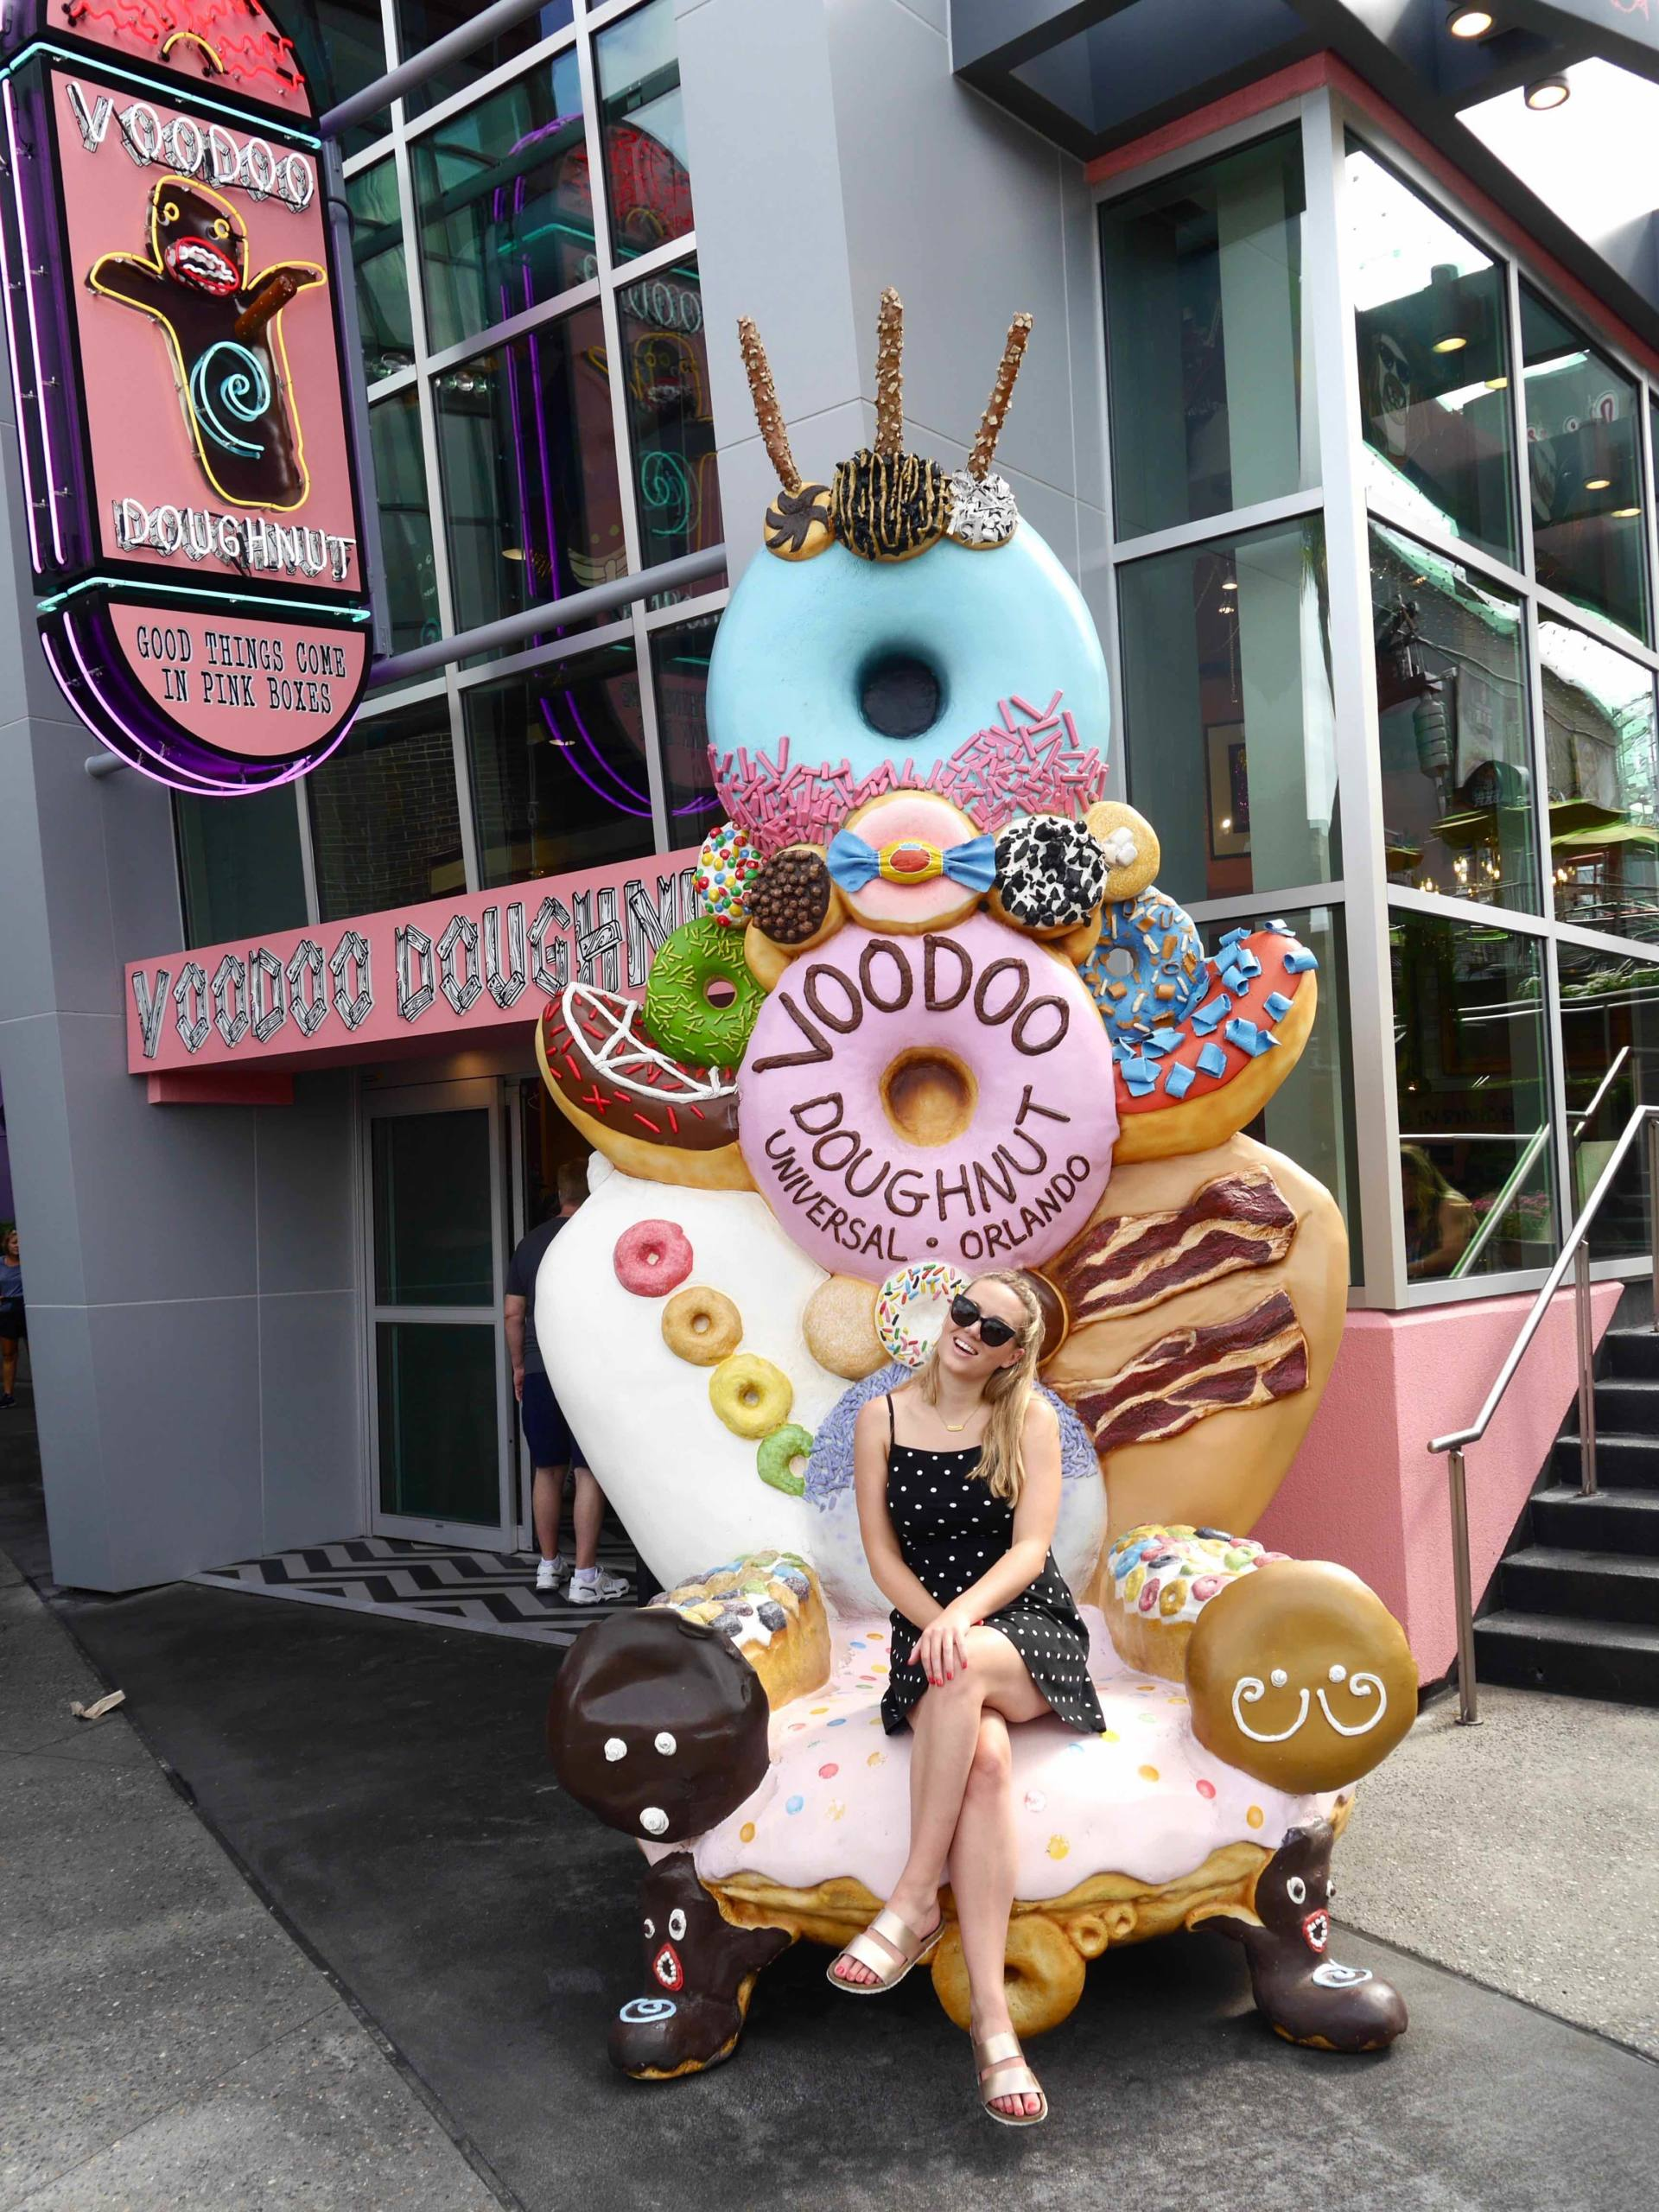 Voodoo Doughnuts City Walk Orlando Florida | The Travelsta